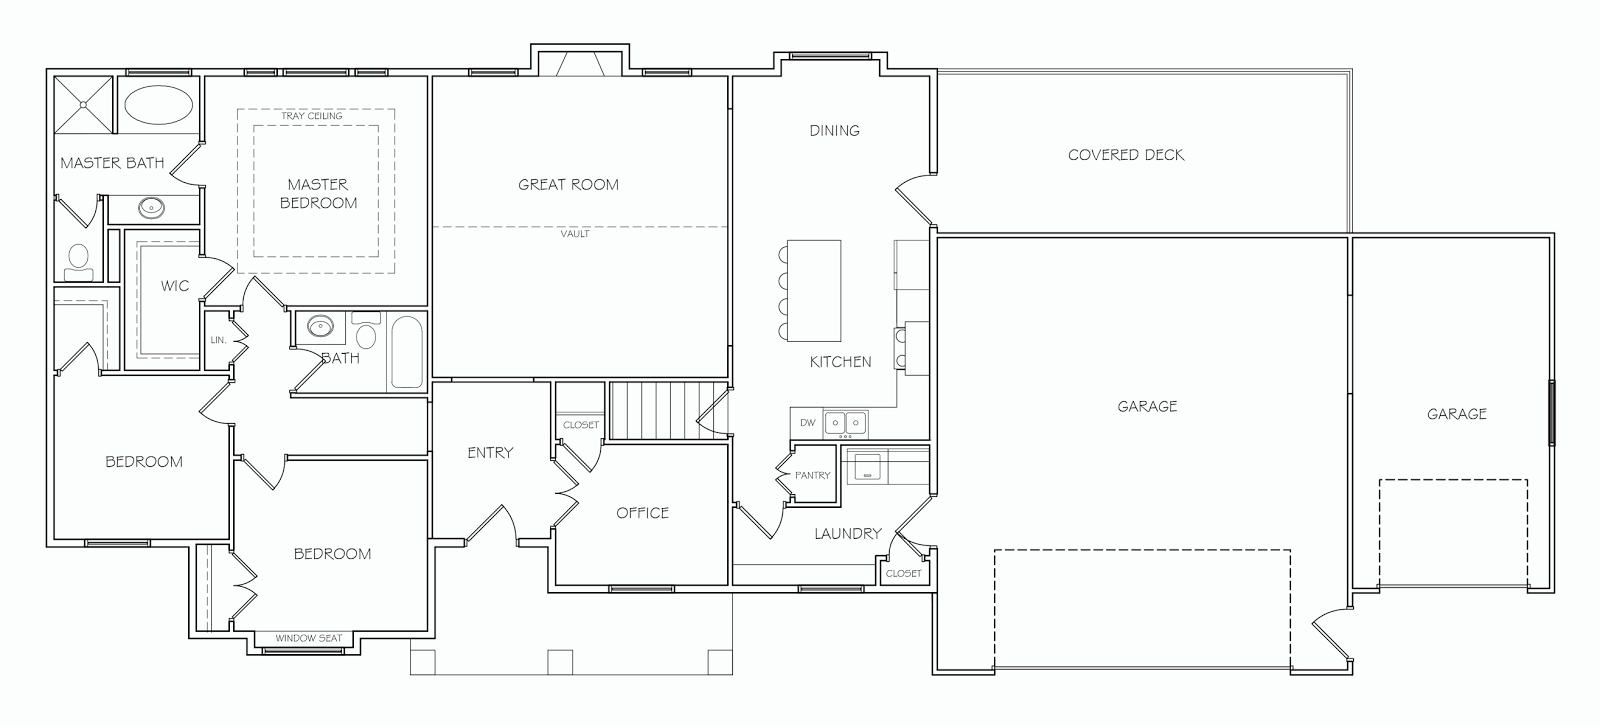 numbered street designs our floor plan we also decided for resale value we wanted a third car garage so i rearranged a few things again and after a month of changes we ended up with the final